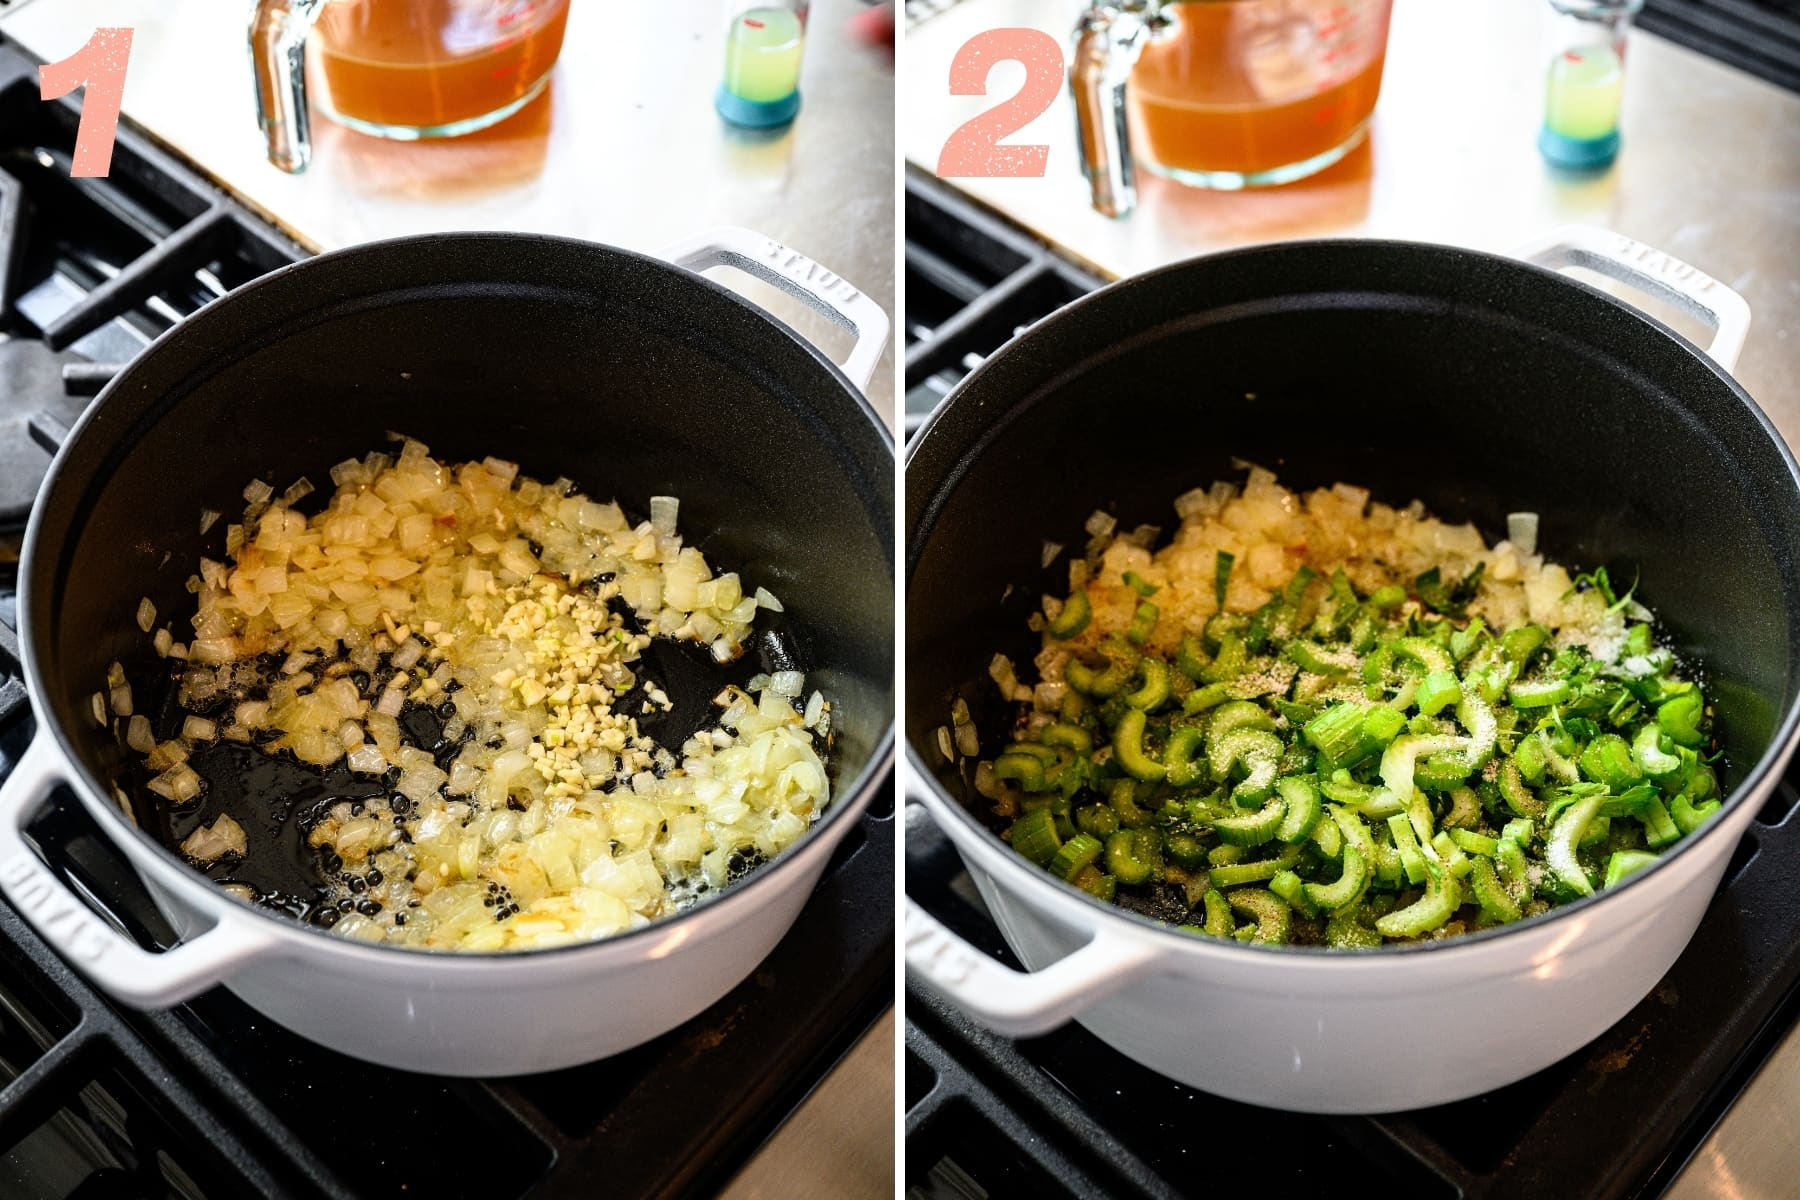 before and after adding celery to sautéed onions and garlic in large pot.